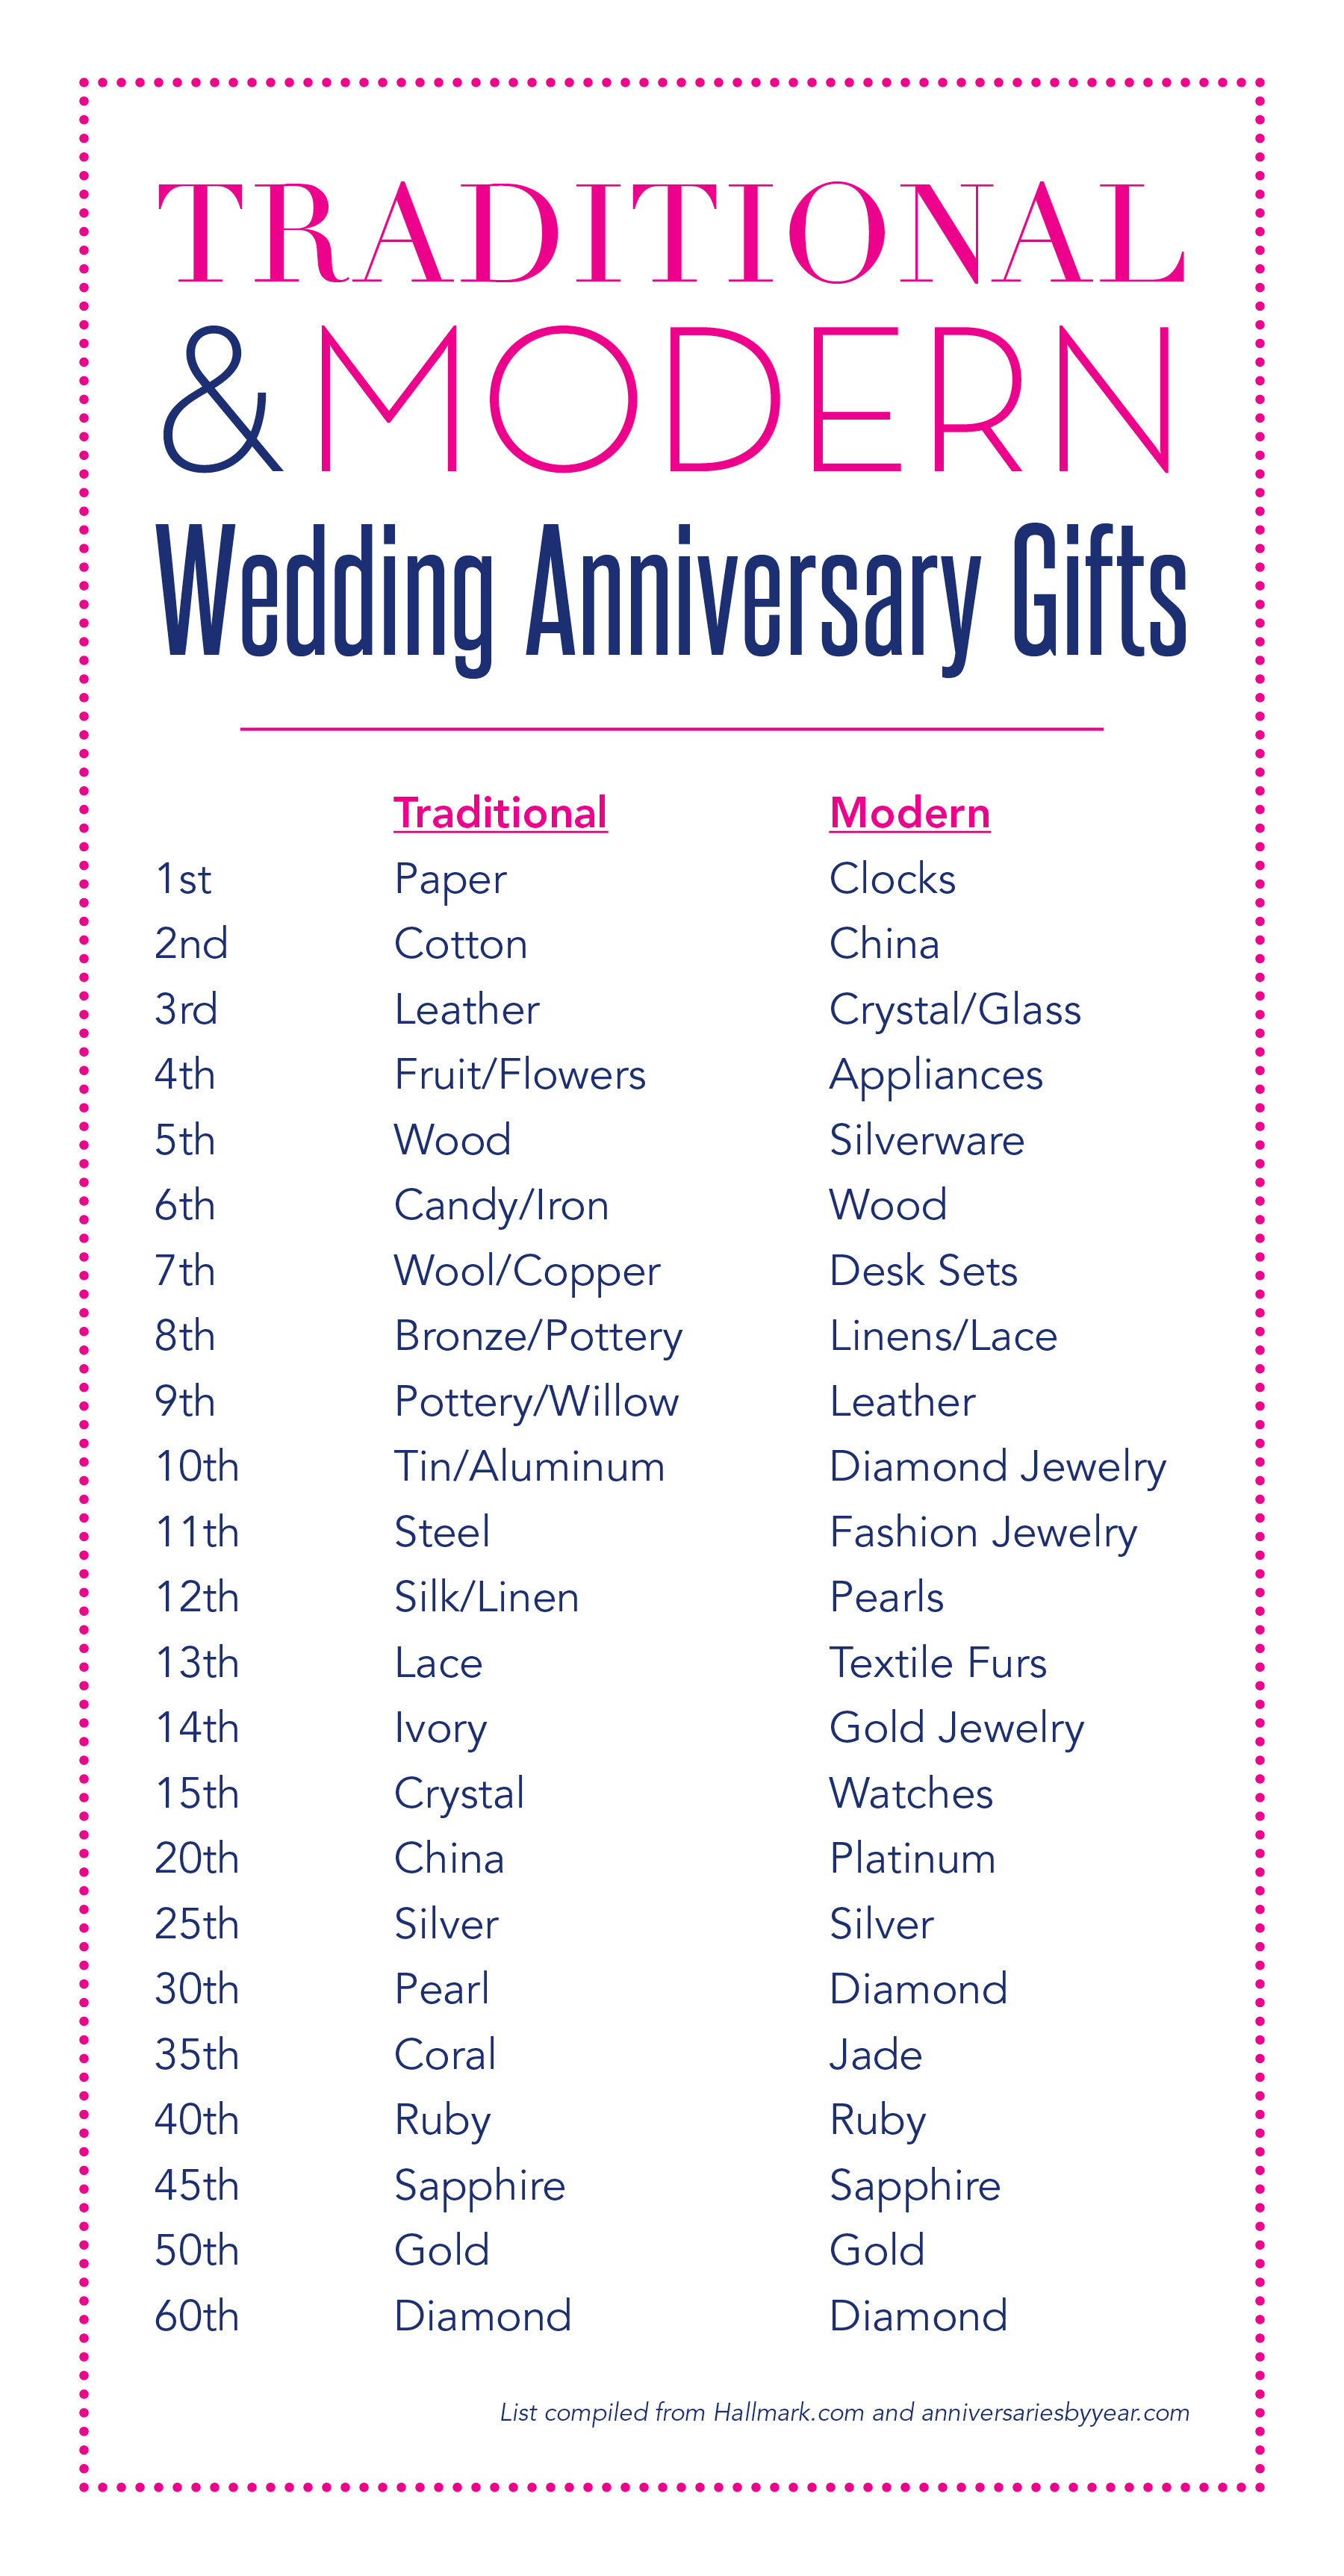 Wedding anniversary gifts traditional modern for 1st year wedding anniversary gift